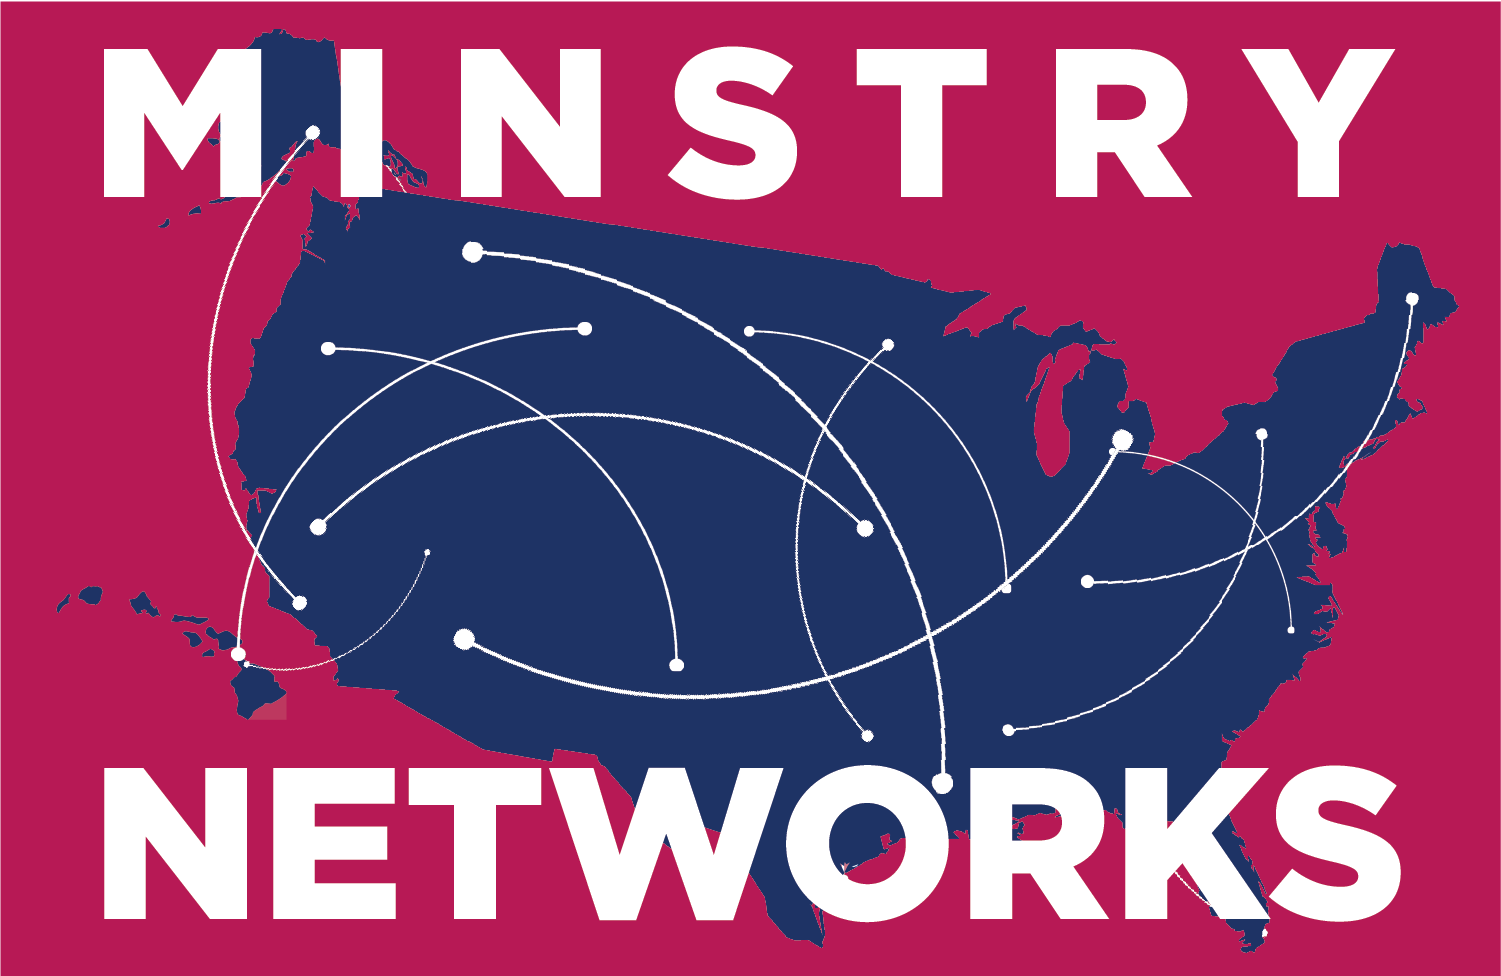 Ministry Networks